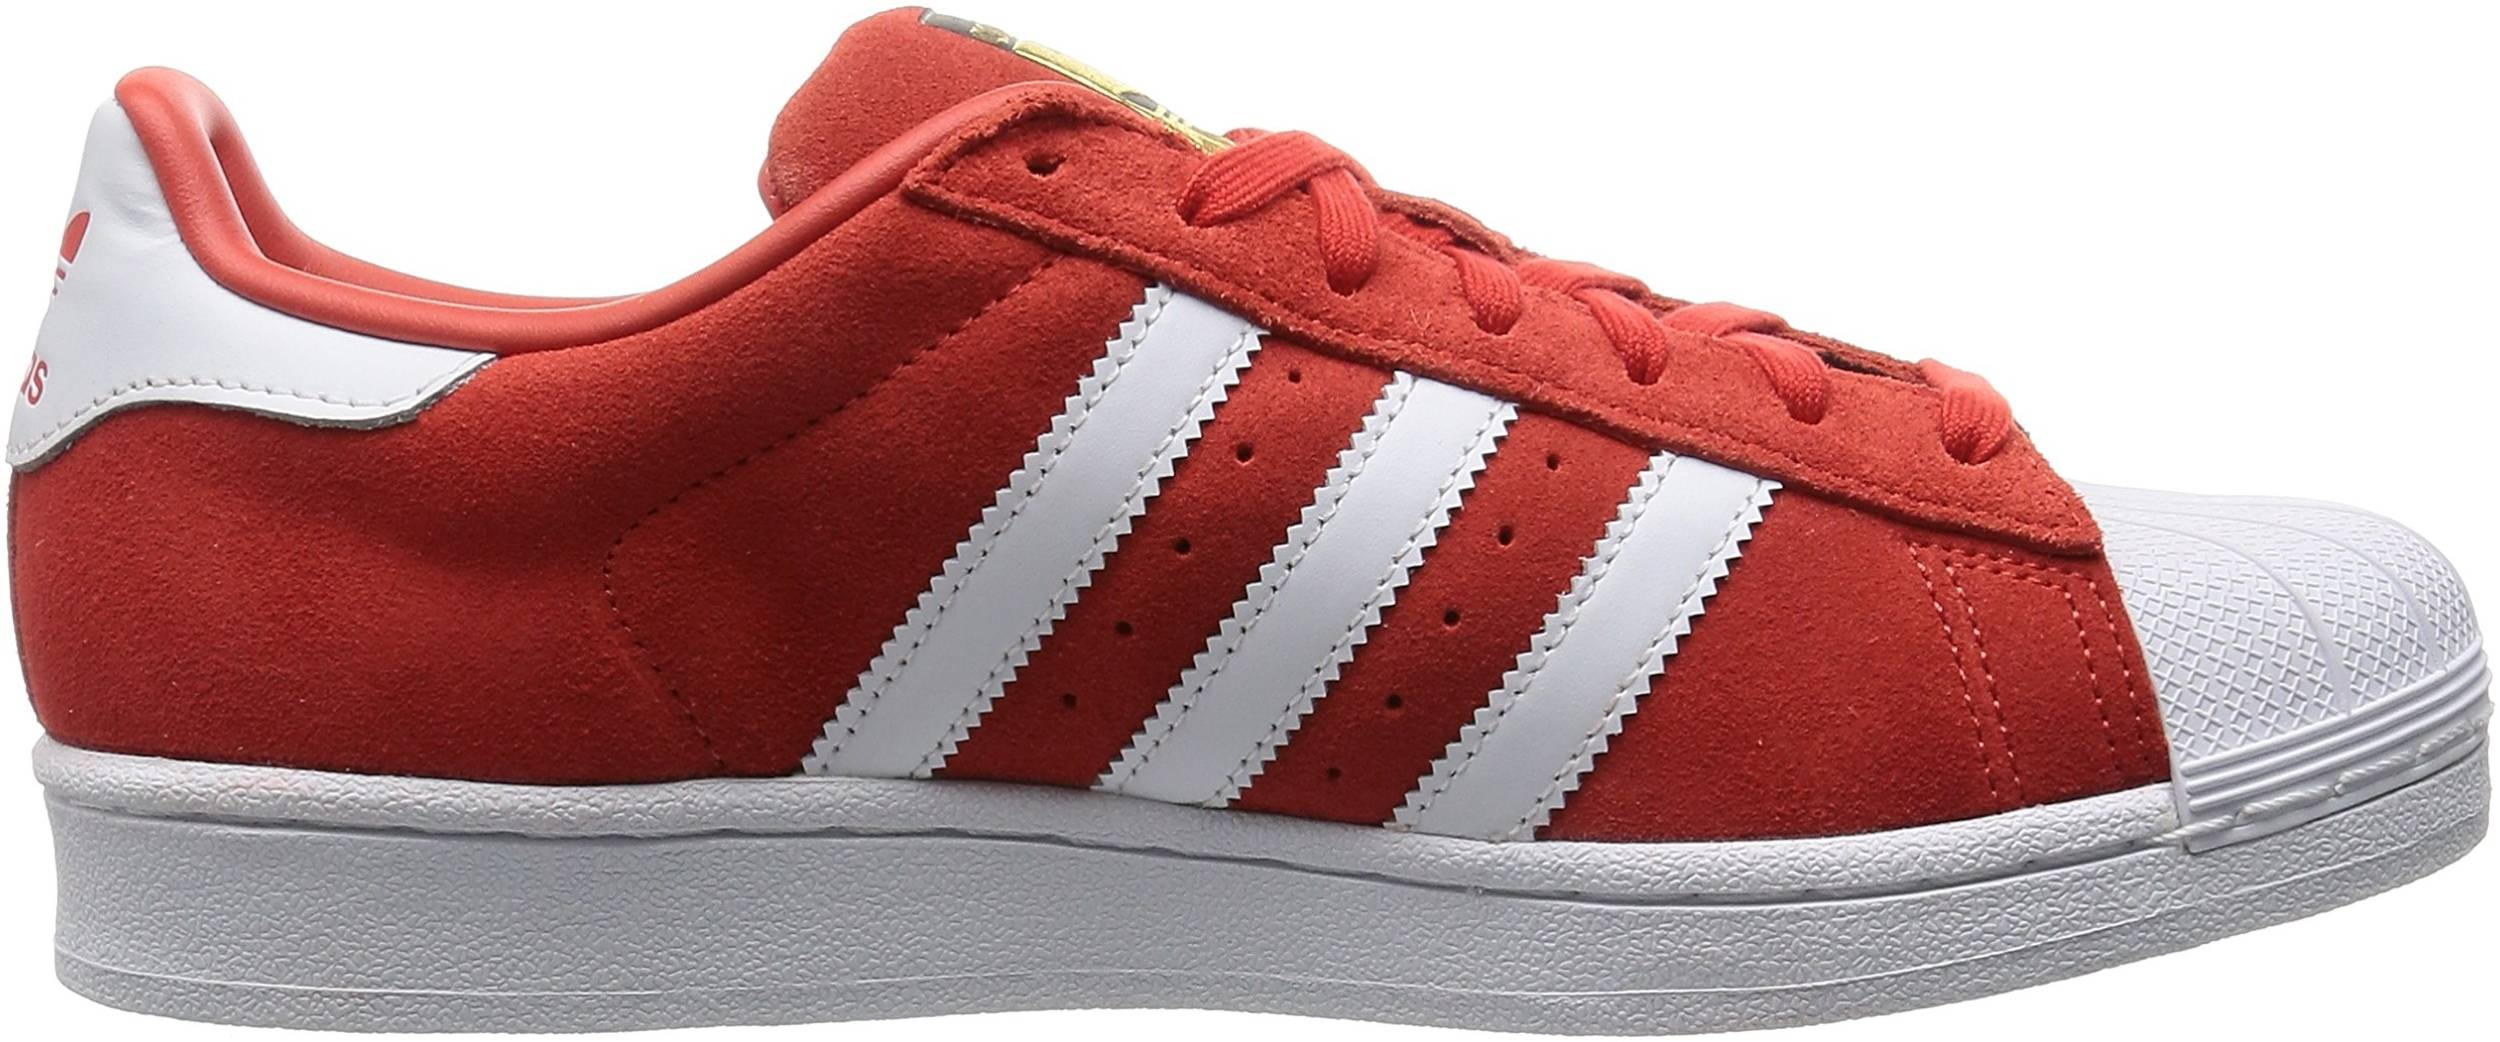 8 Reasons to/NOT to Buy Adidas Superstar Suede (Sep 2021) | RunRepeat